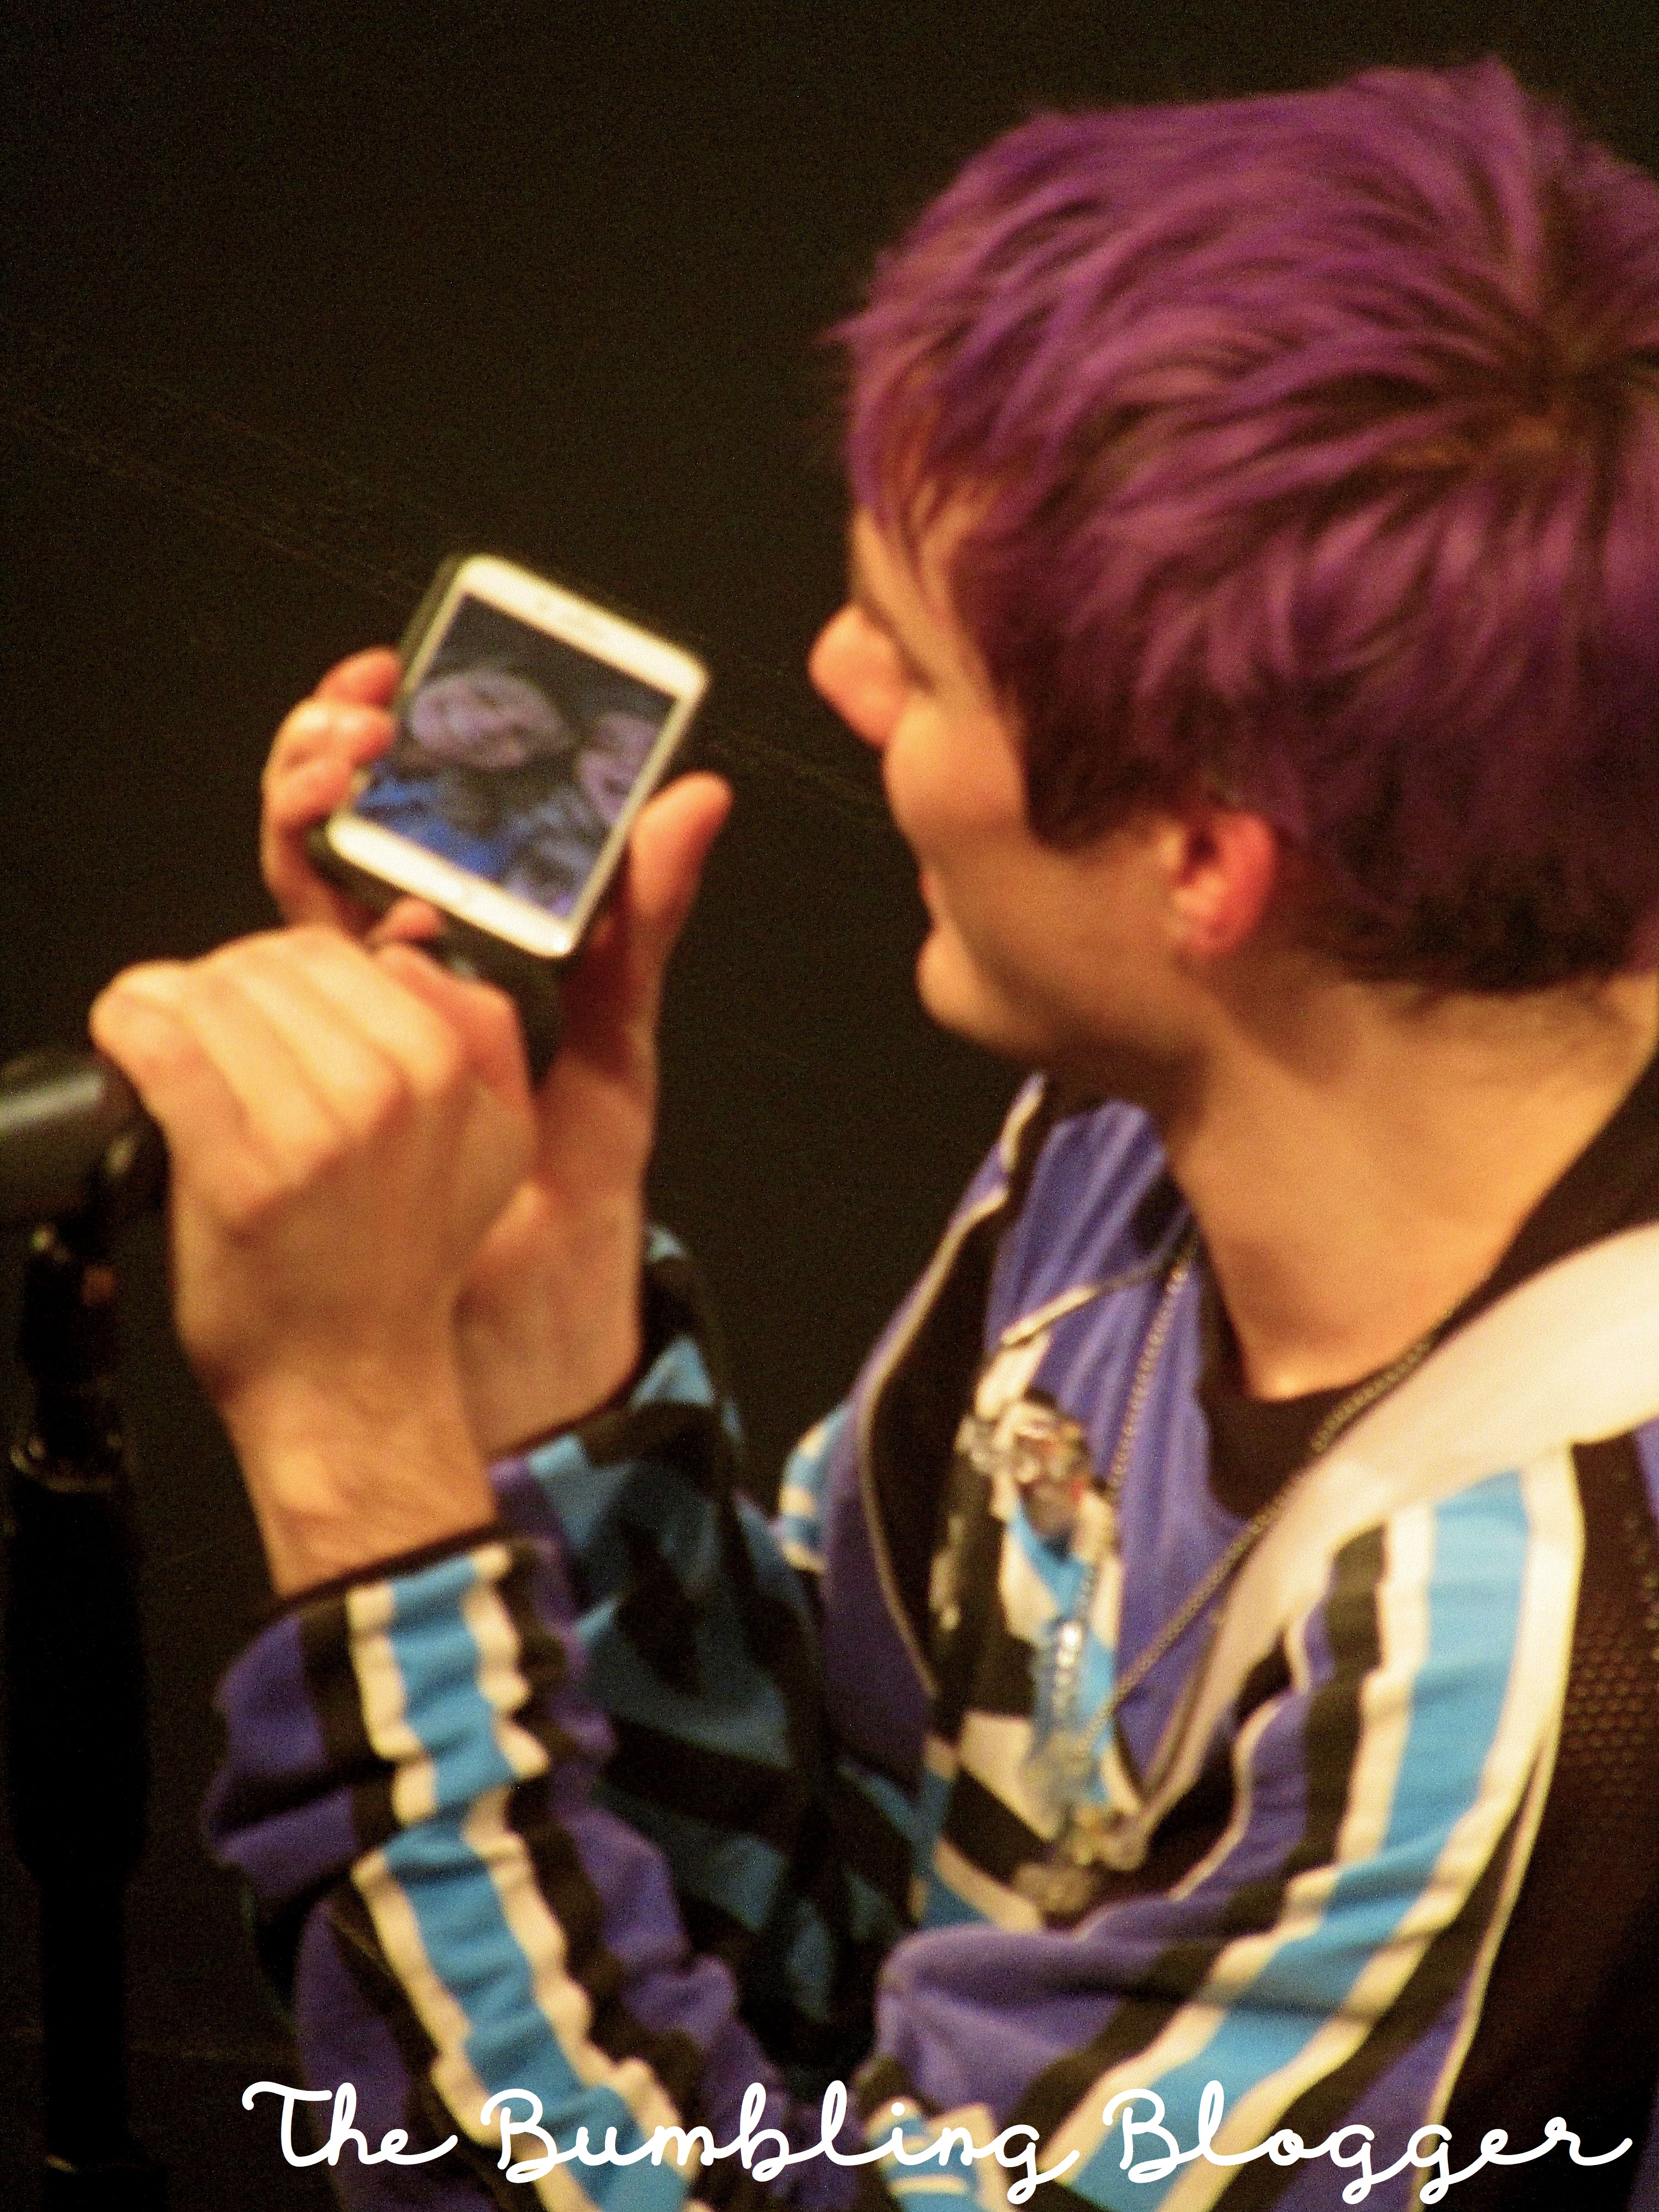 Awsten Knight phoning home